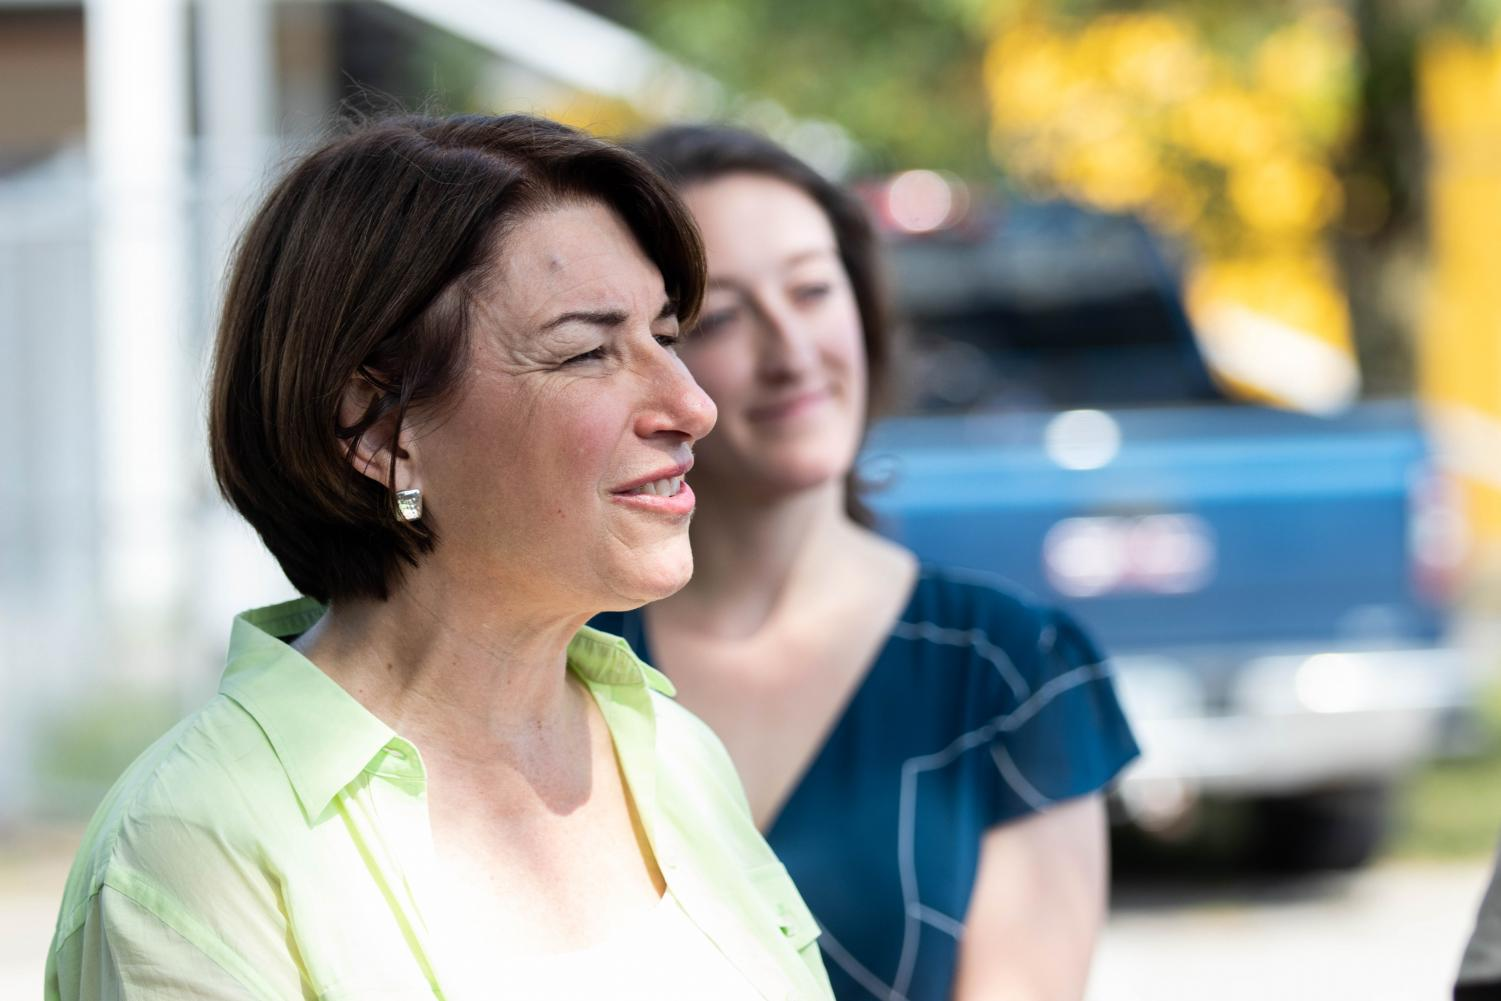 Sen.+Amy+Klobuchar%2C+D-MN%2C+speaks+to+the+media+during+the+Hawkeye+Area+Labor+Council+Picnic+at+Hawkeye+Downs+on+Monday%2C+September+2%2C+2019.+